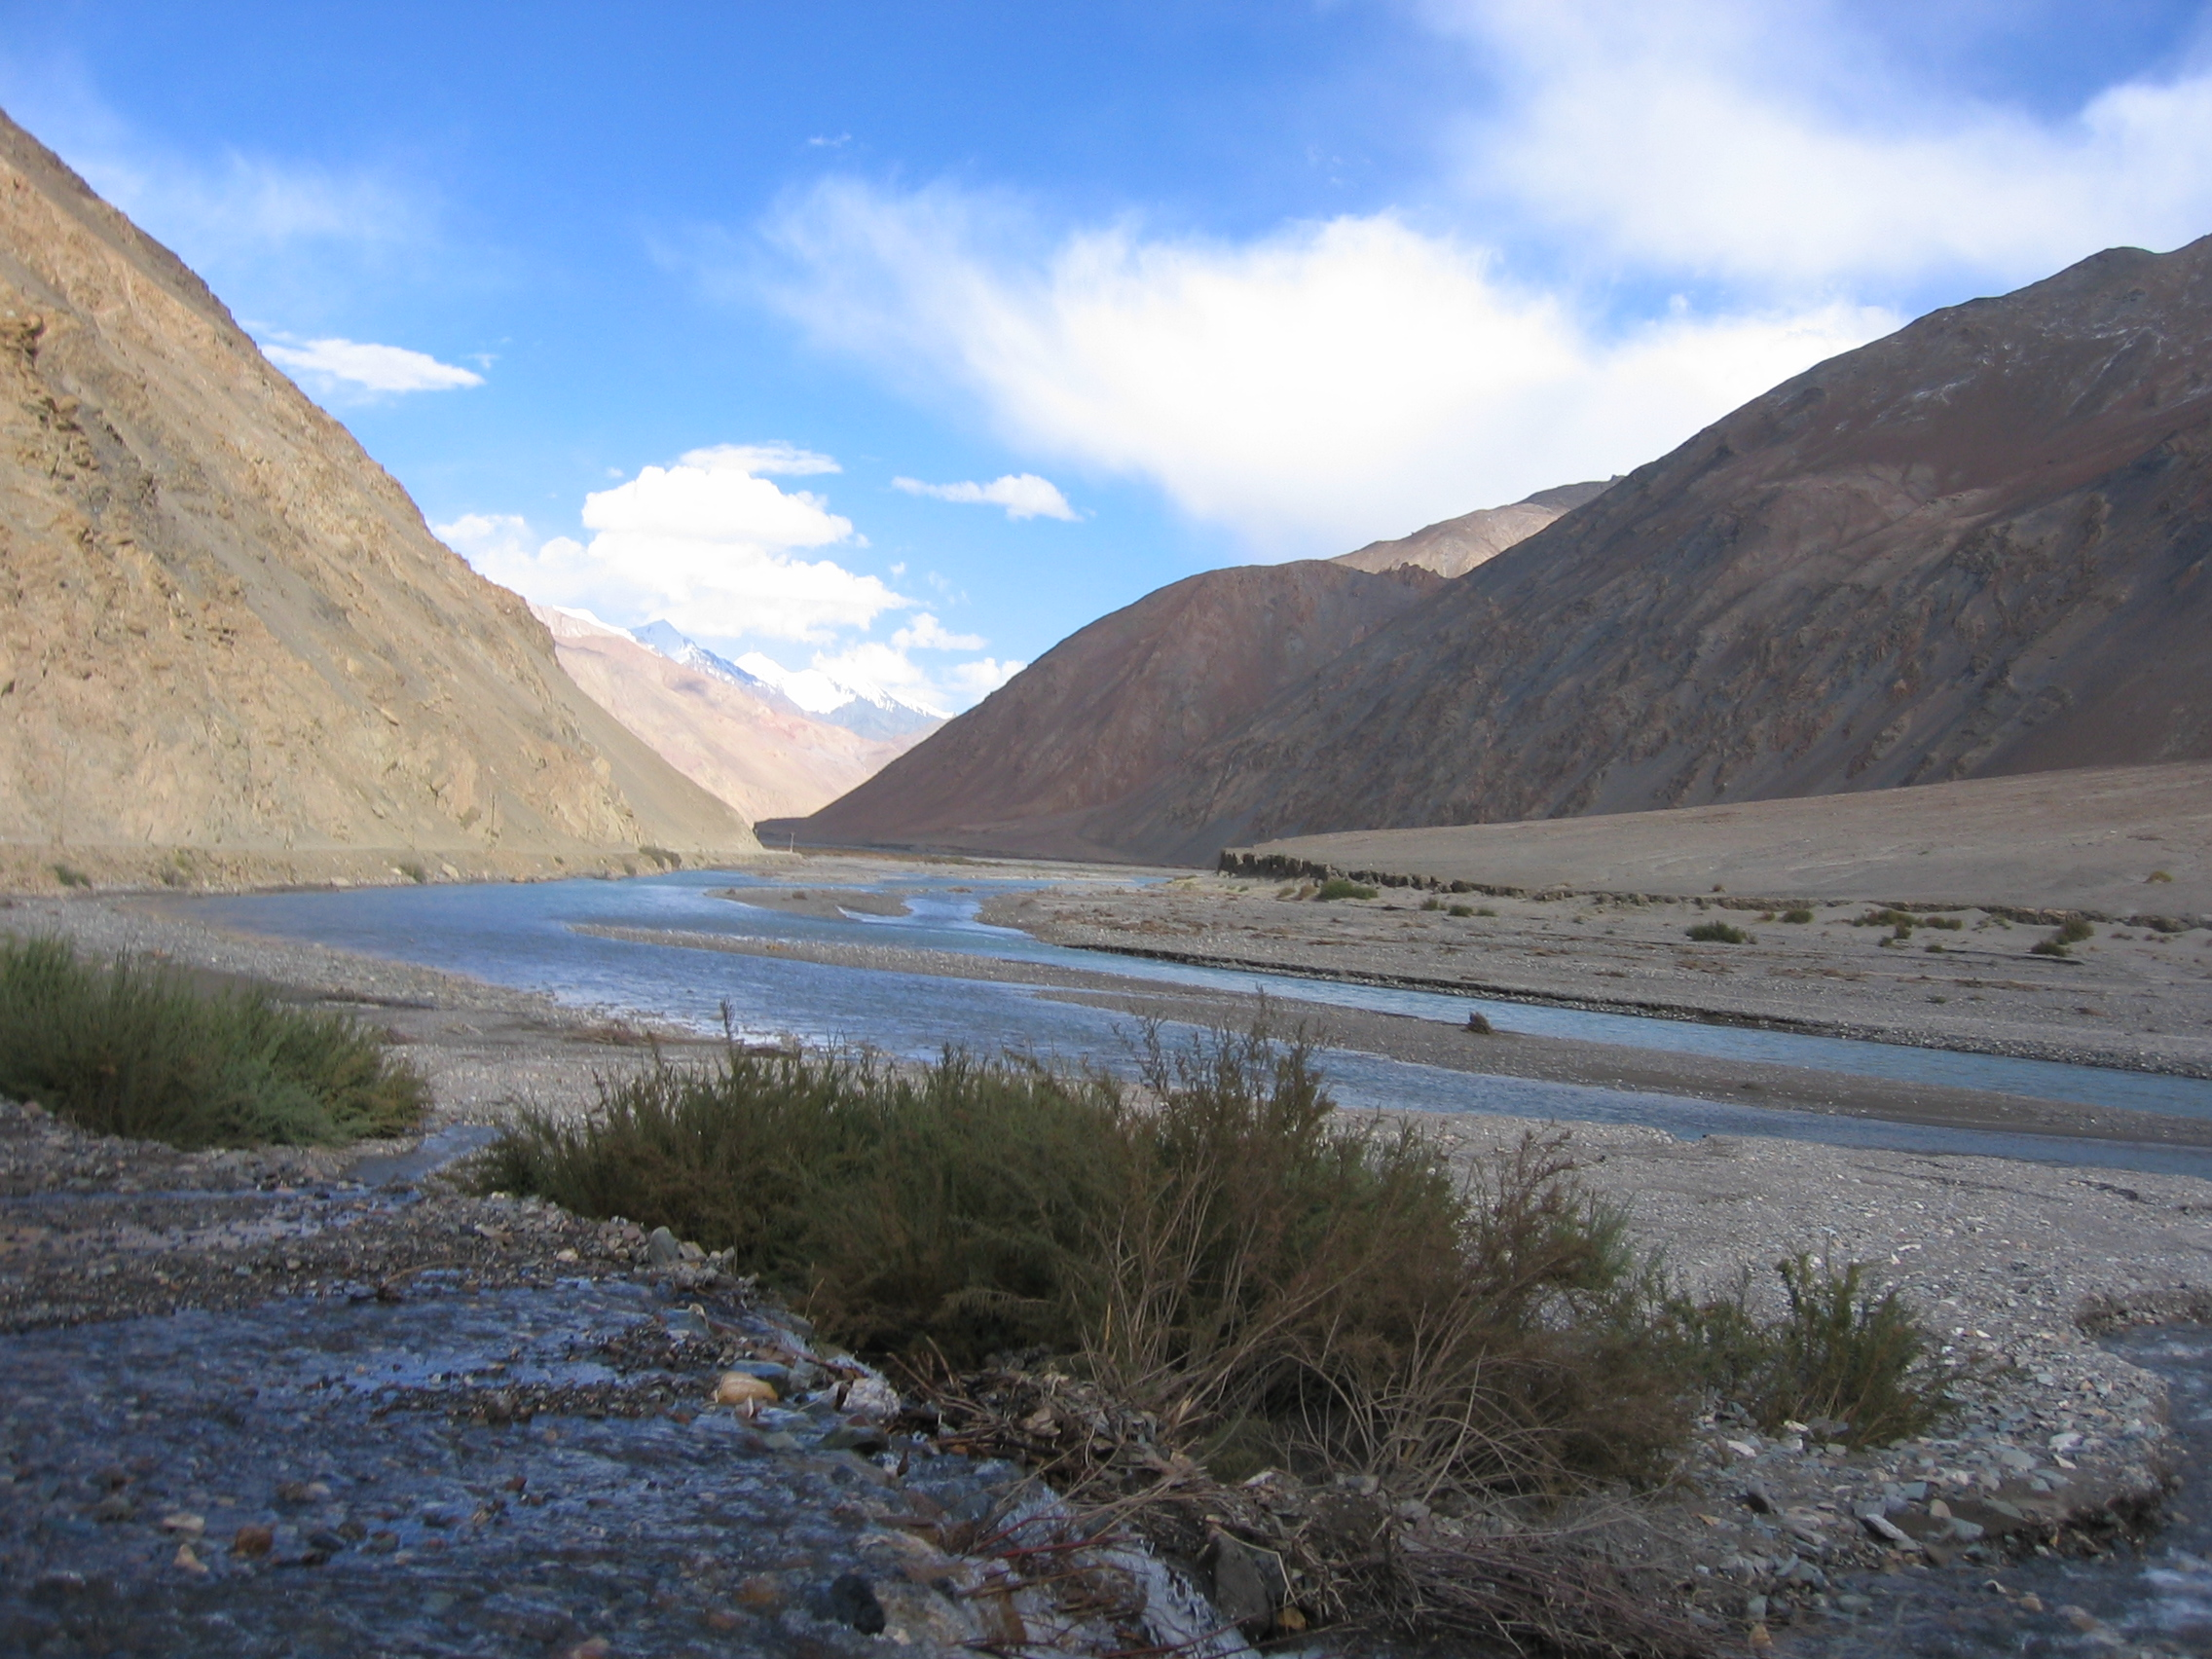 karakash_river_in_the_western_kunlun_shan_seen_from_the_tibet-xinjiang_highway-1